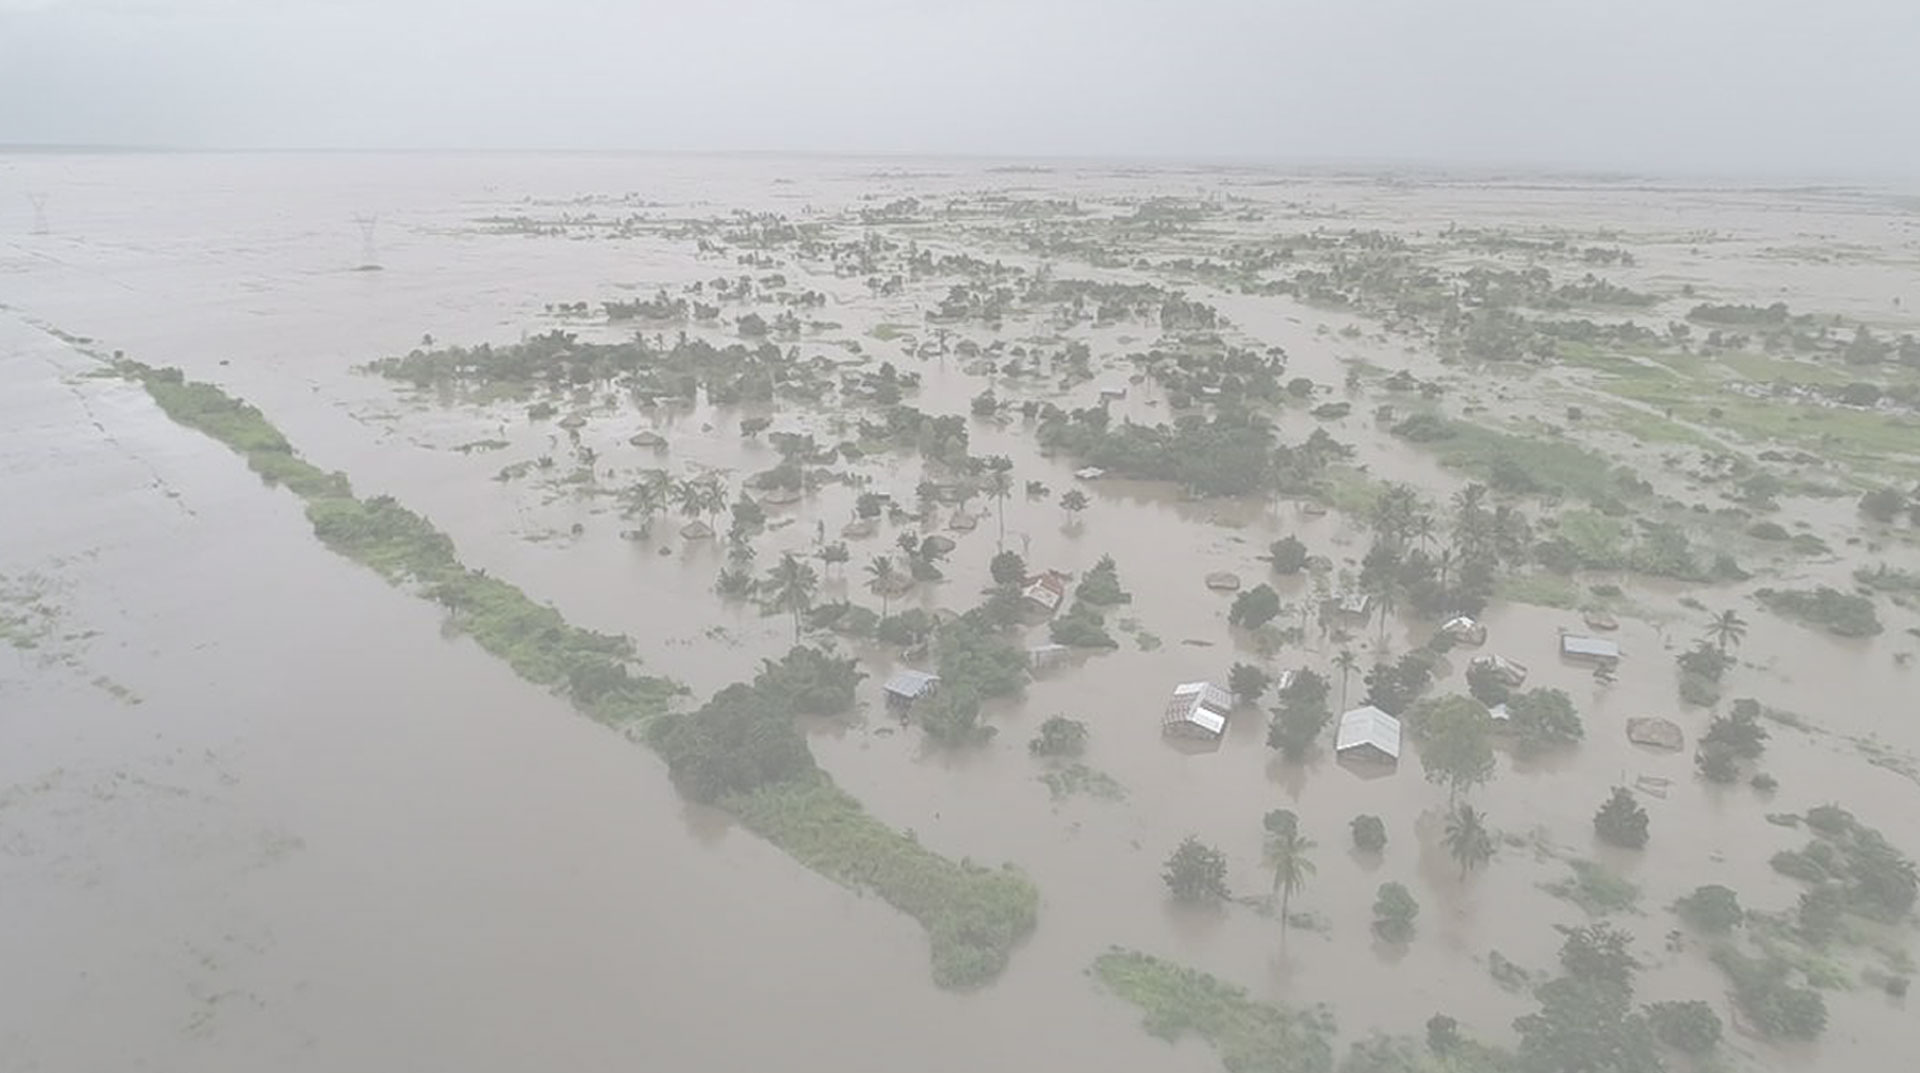 Cyclone Idai Devestation